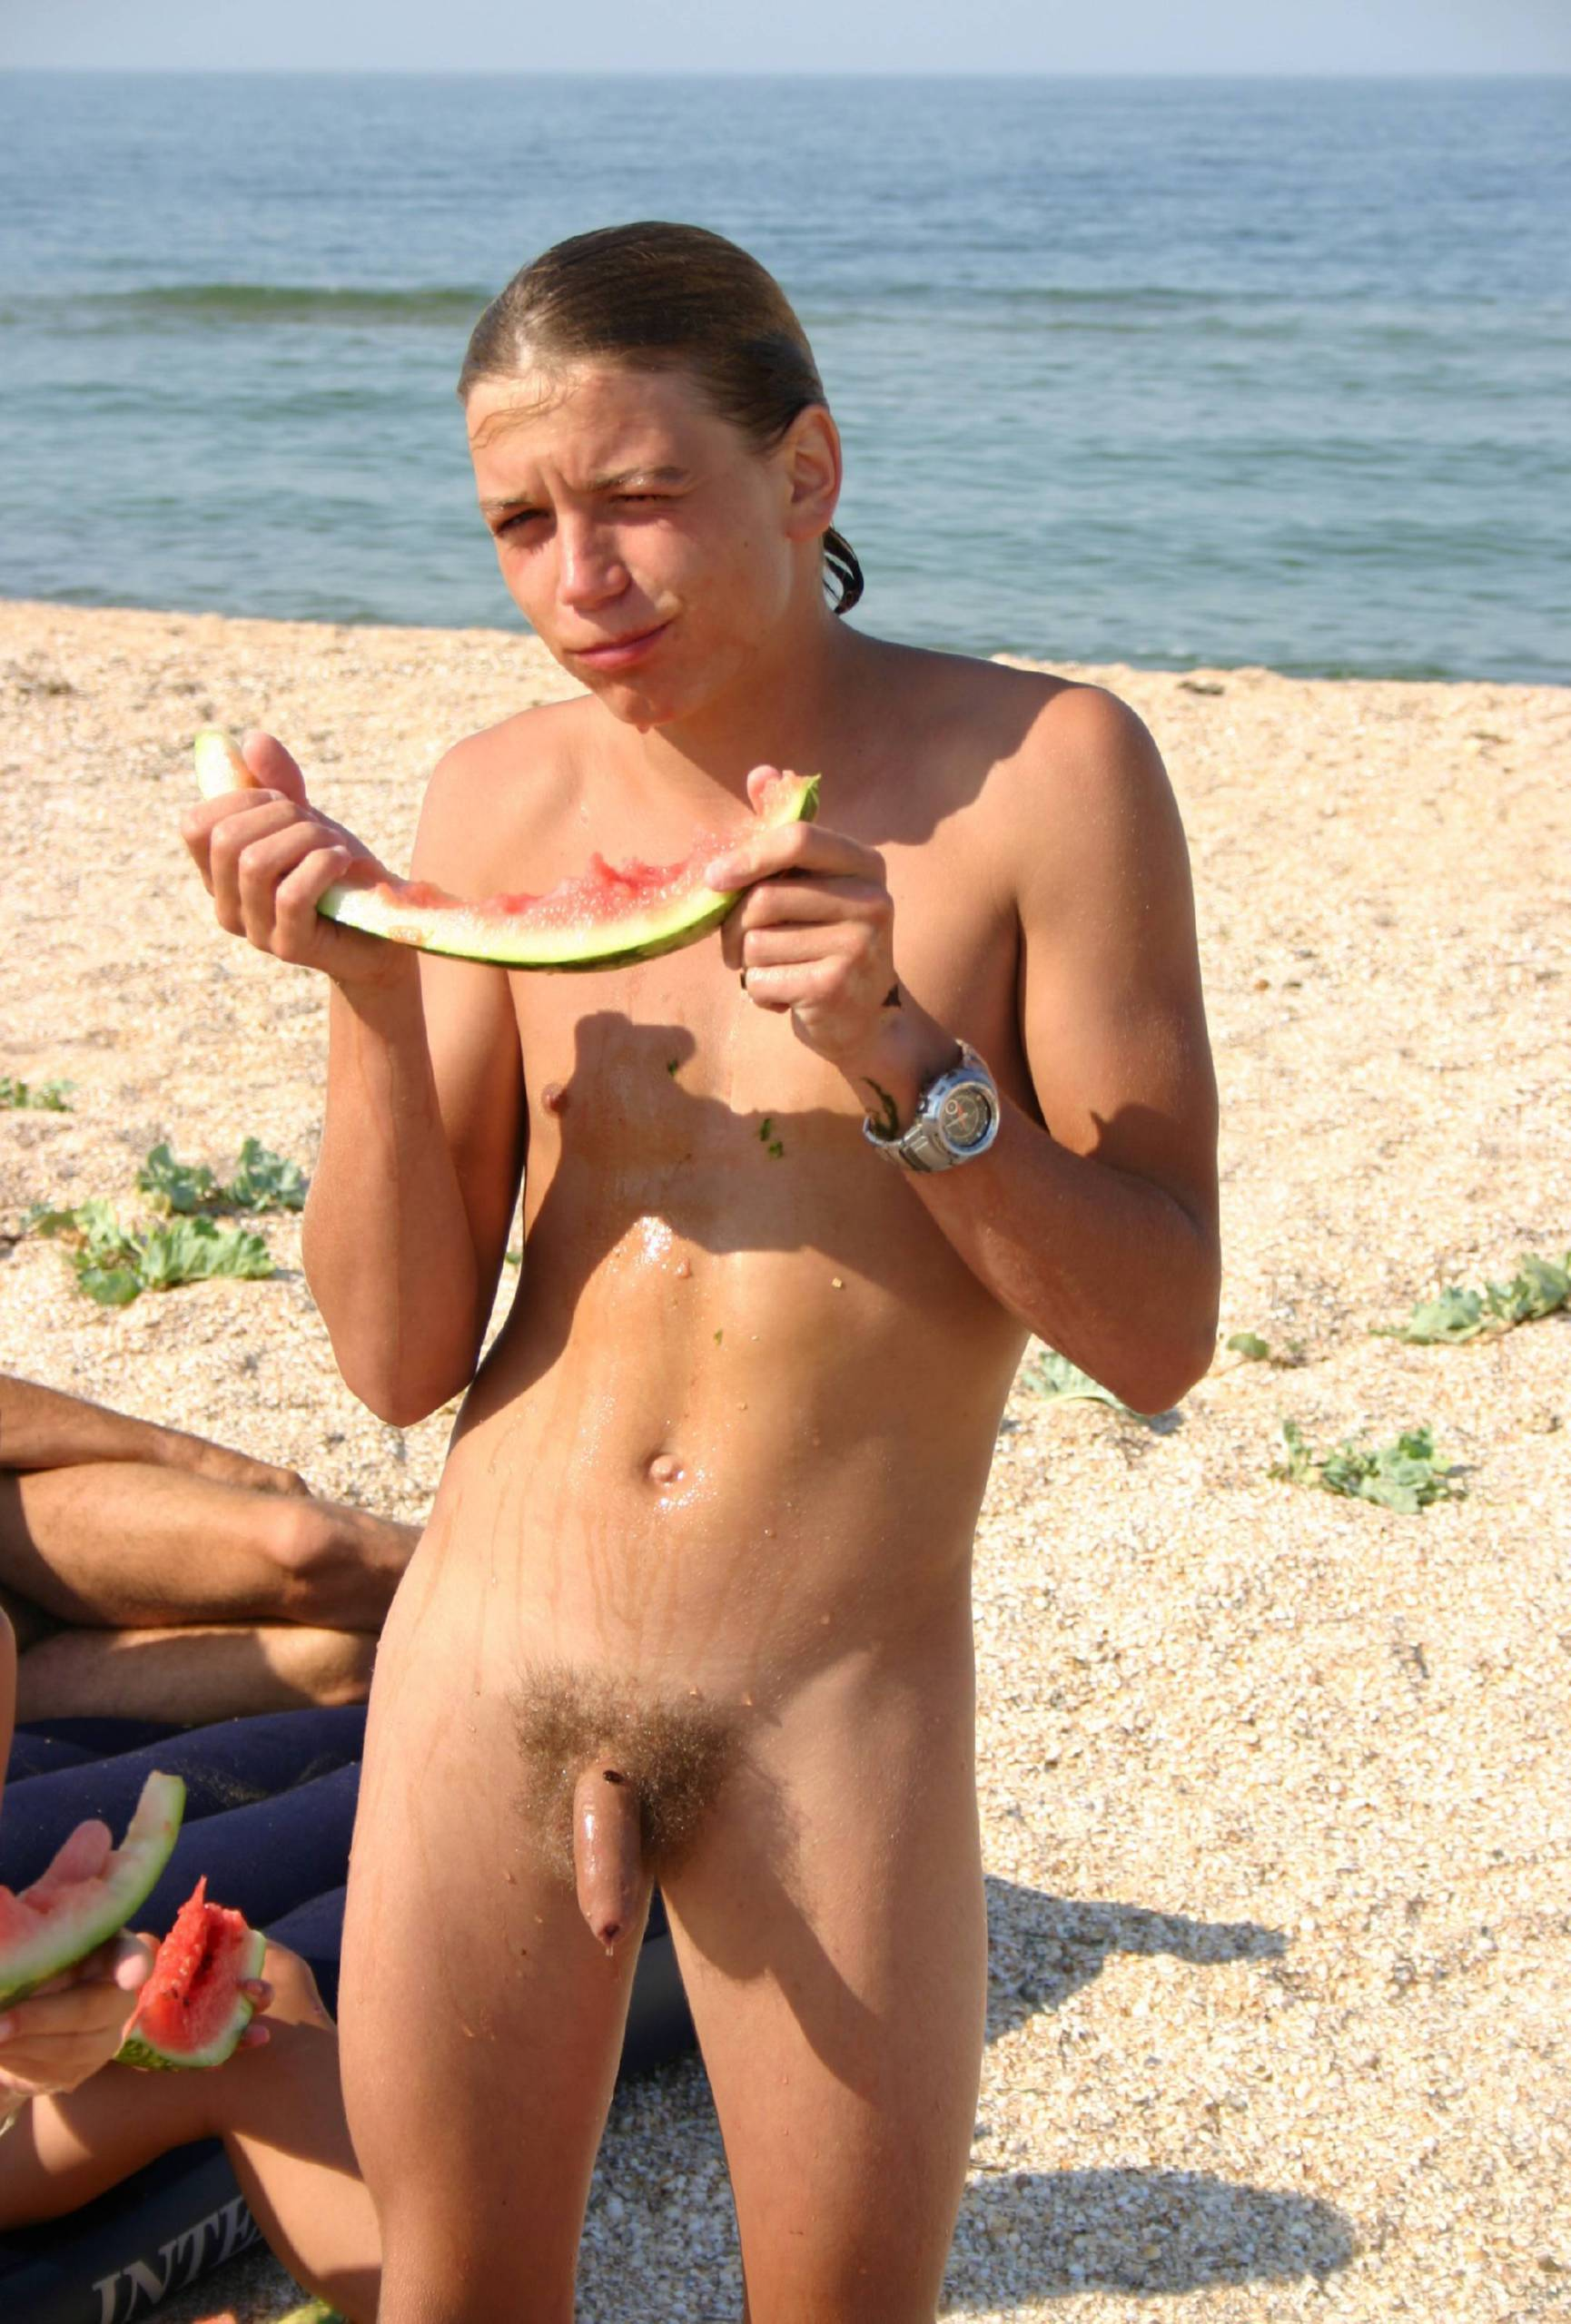 Watermelon Beach Snack - 2